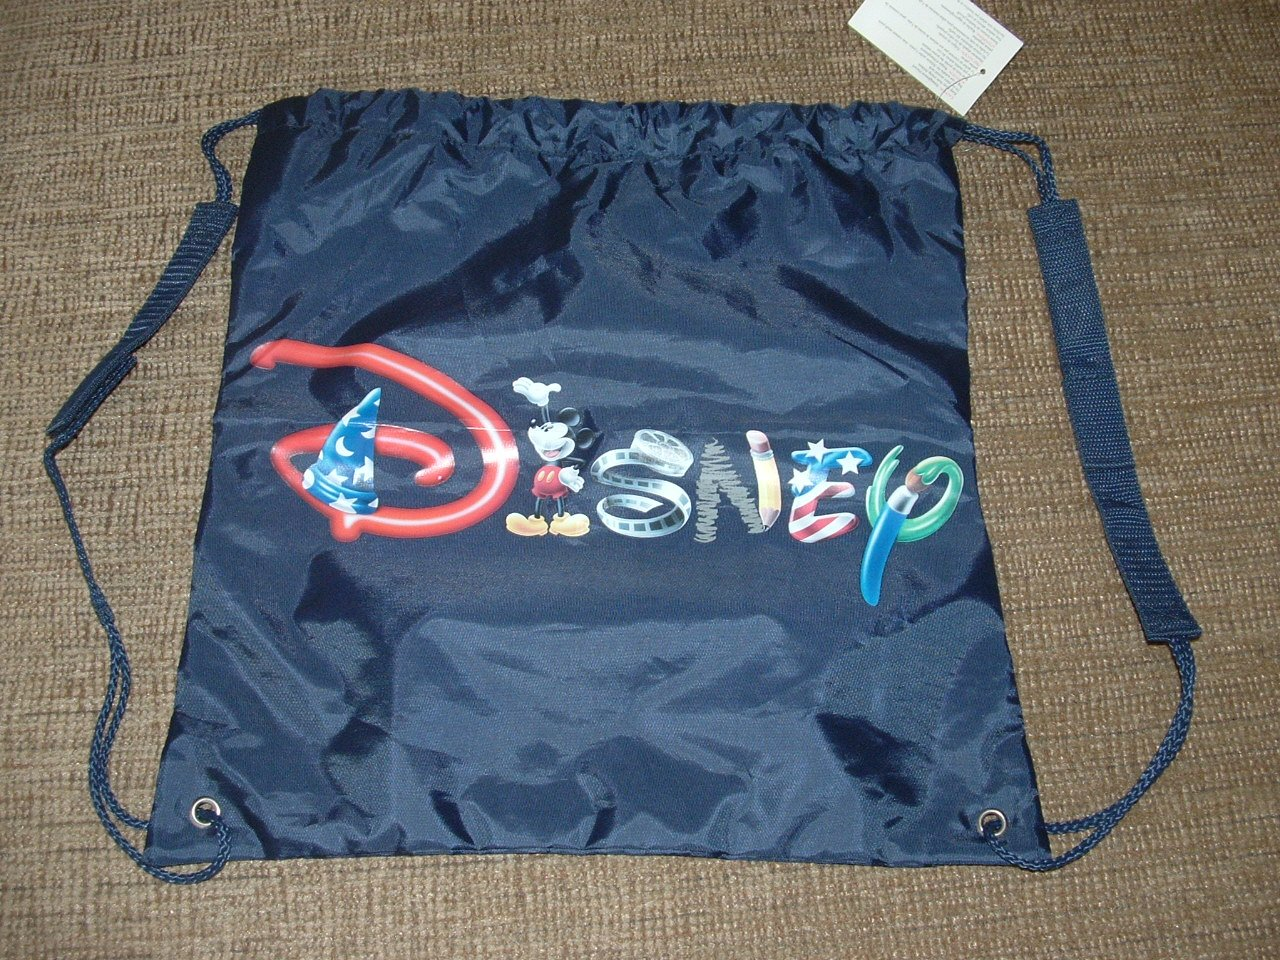 DISNEY FANTASIA MERLIN MICKEY MOUSE DRAWSTRING LIGHTWEIGHT BACKPACK/SACK - BRAND NEW!